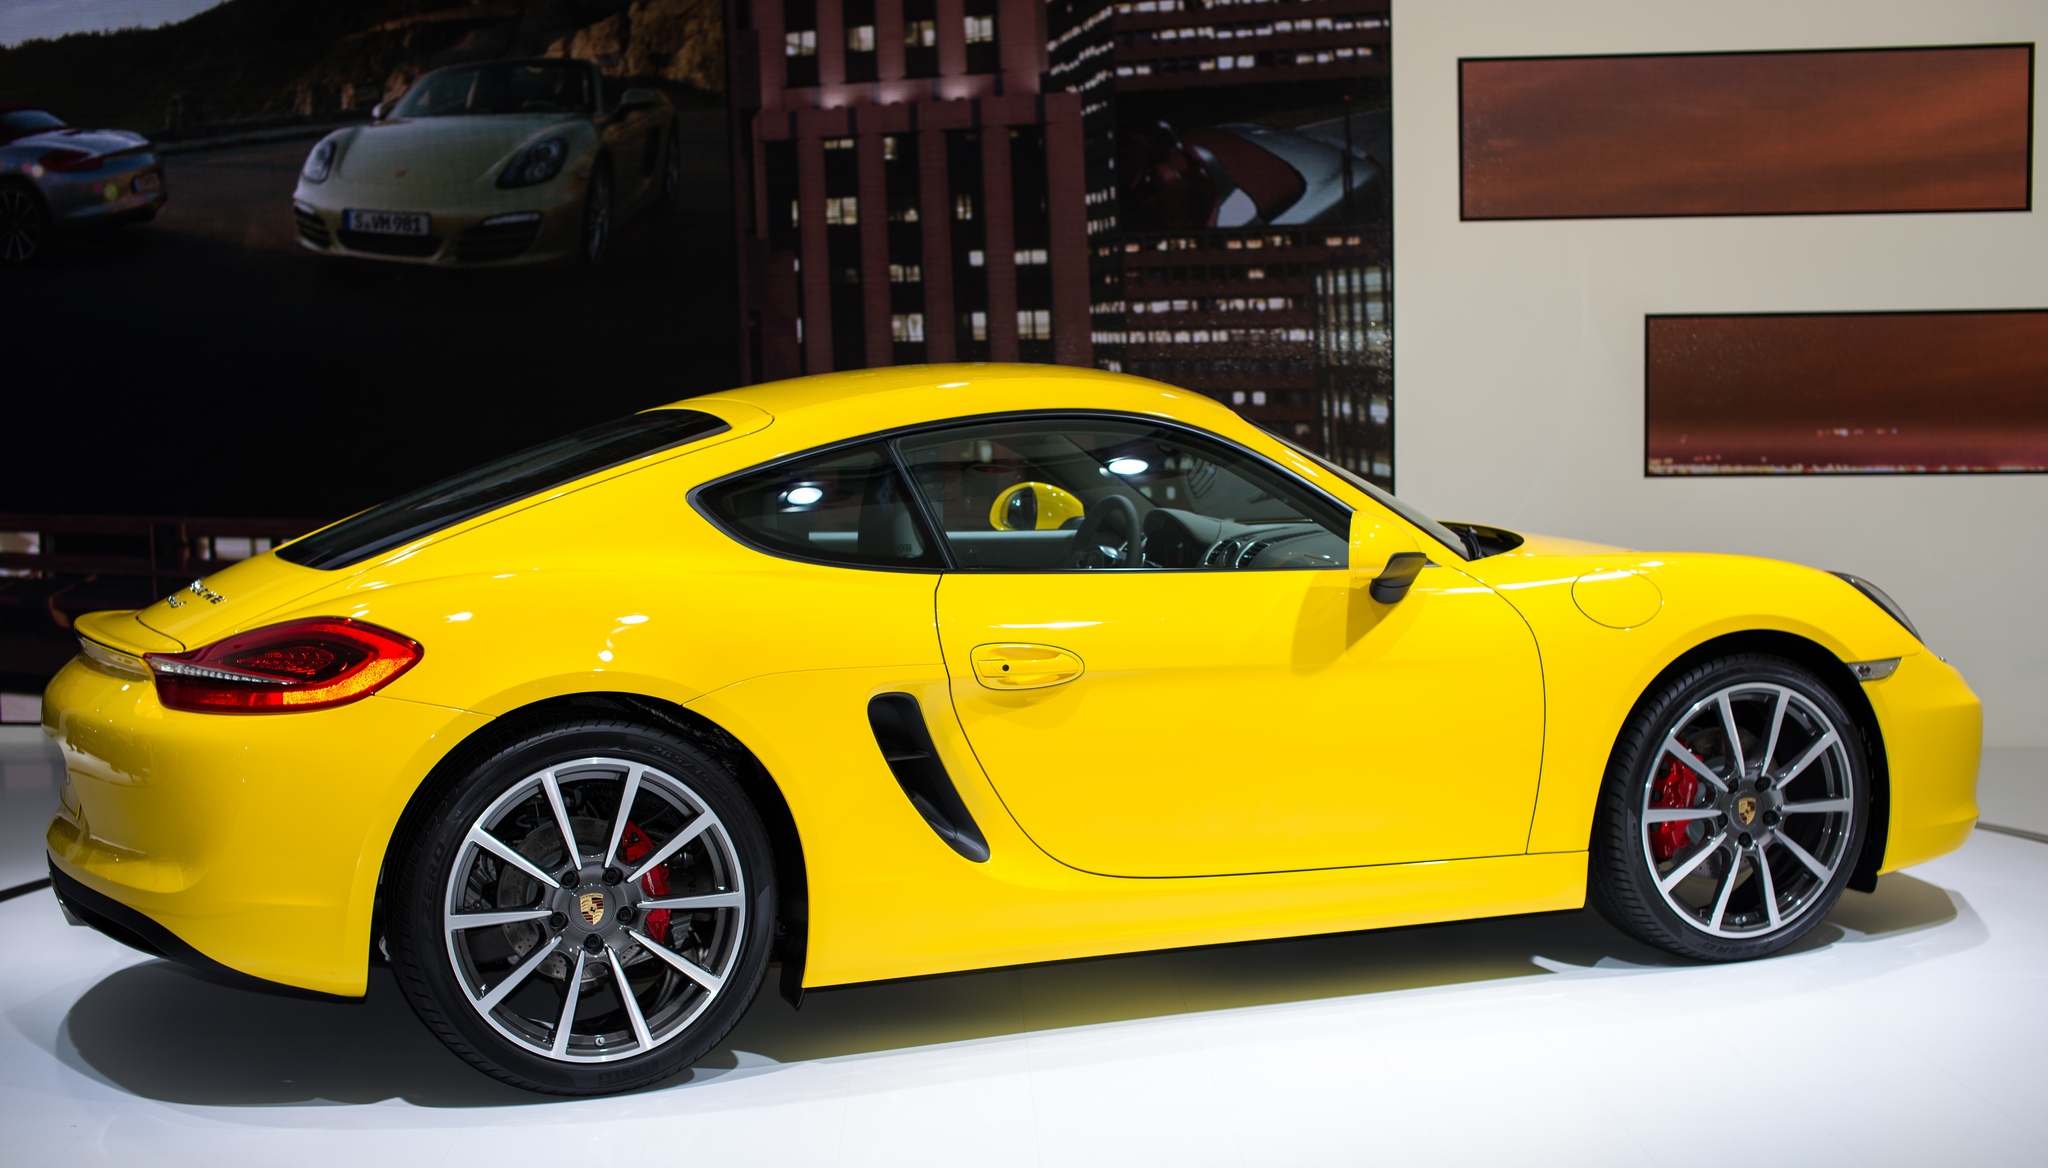 2013-porsche-cayman-yellow-2012-los-angeles-auto-show-by-dailyquota